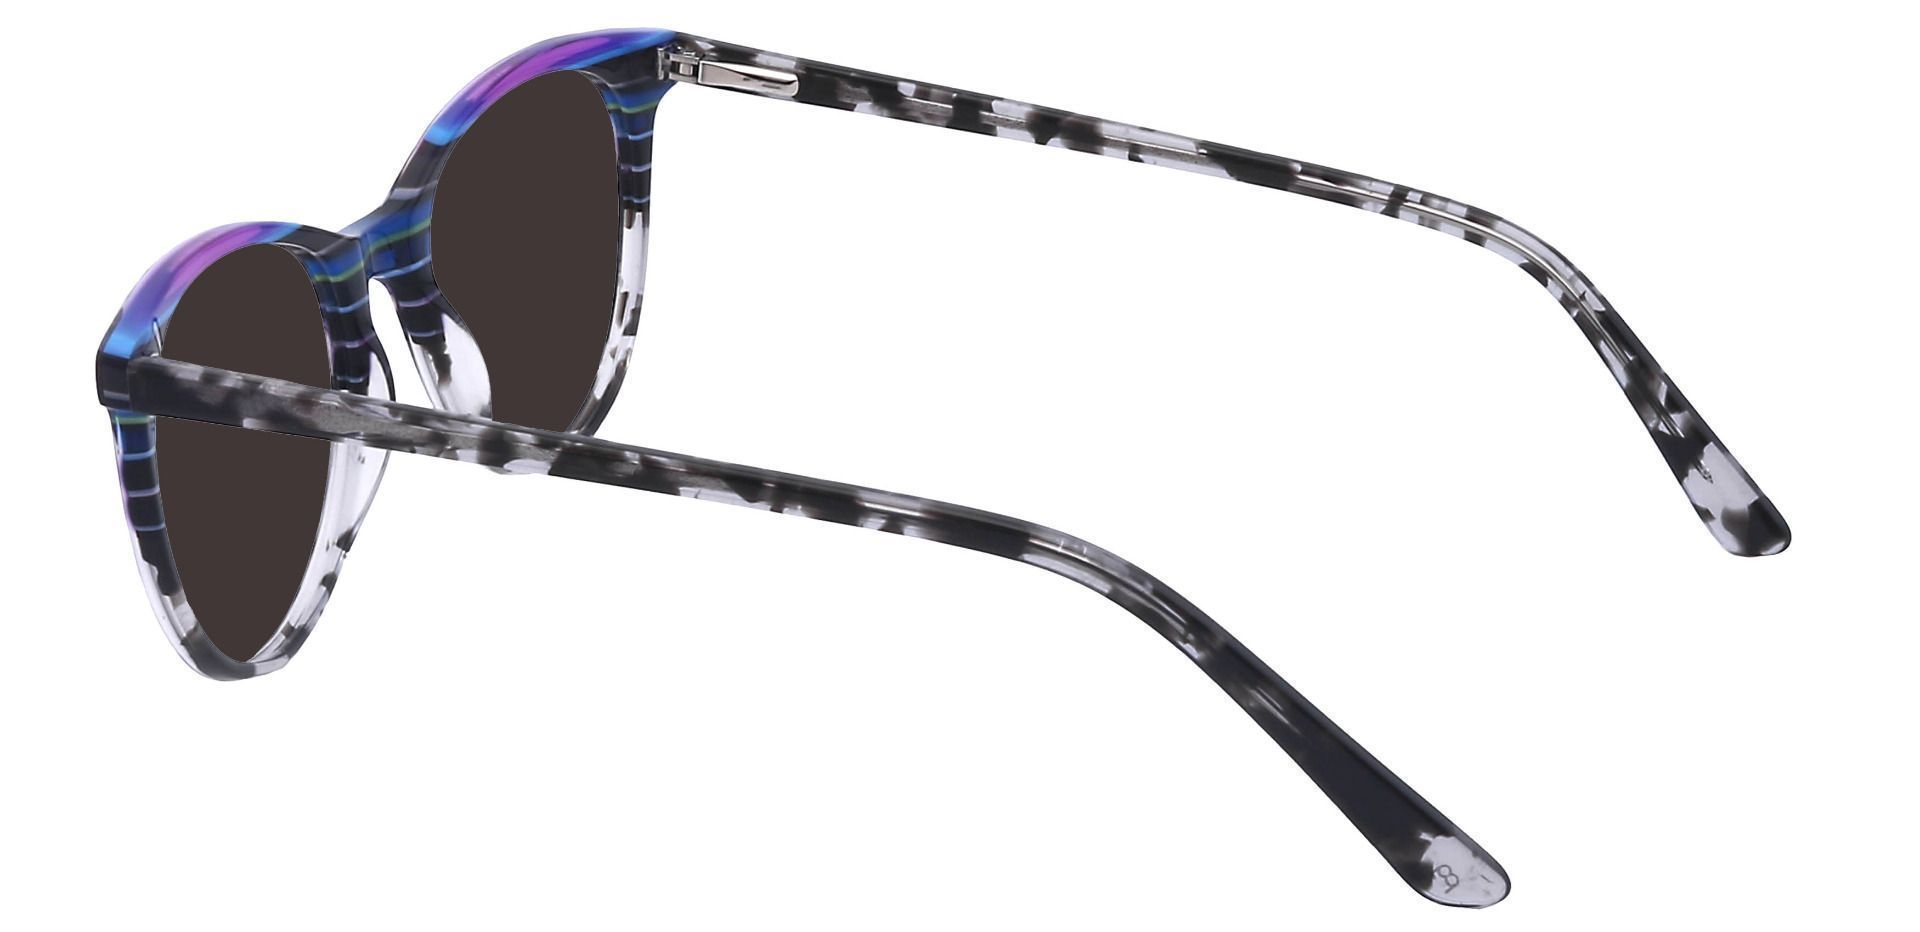 Patagonia Oval Prescription Sunglasses - Gray Frame With Gray Lenses